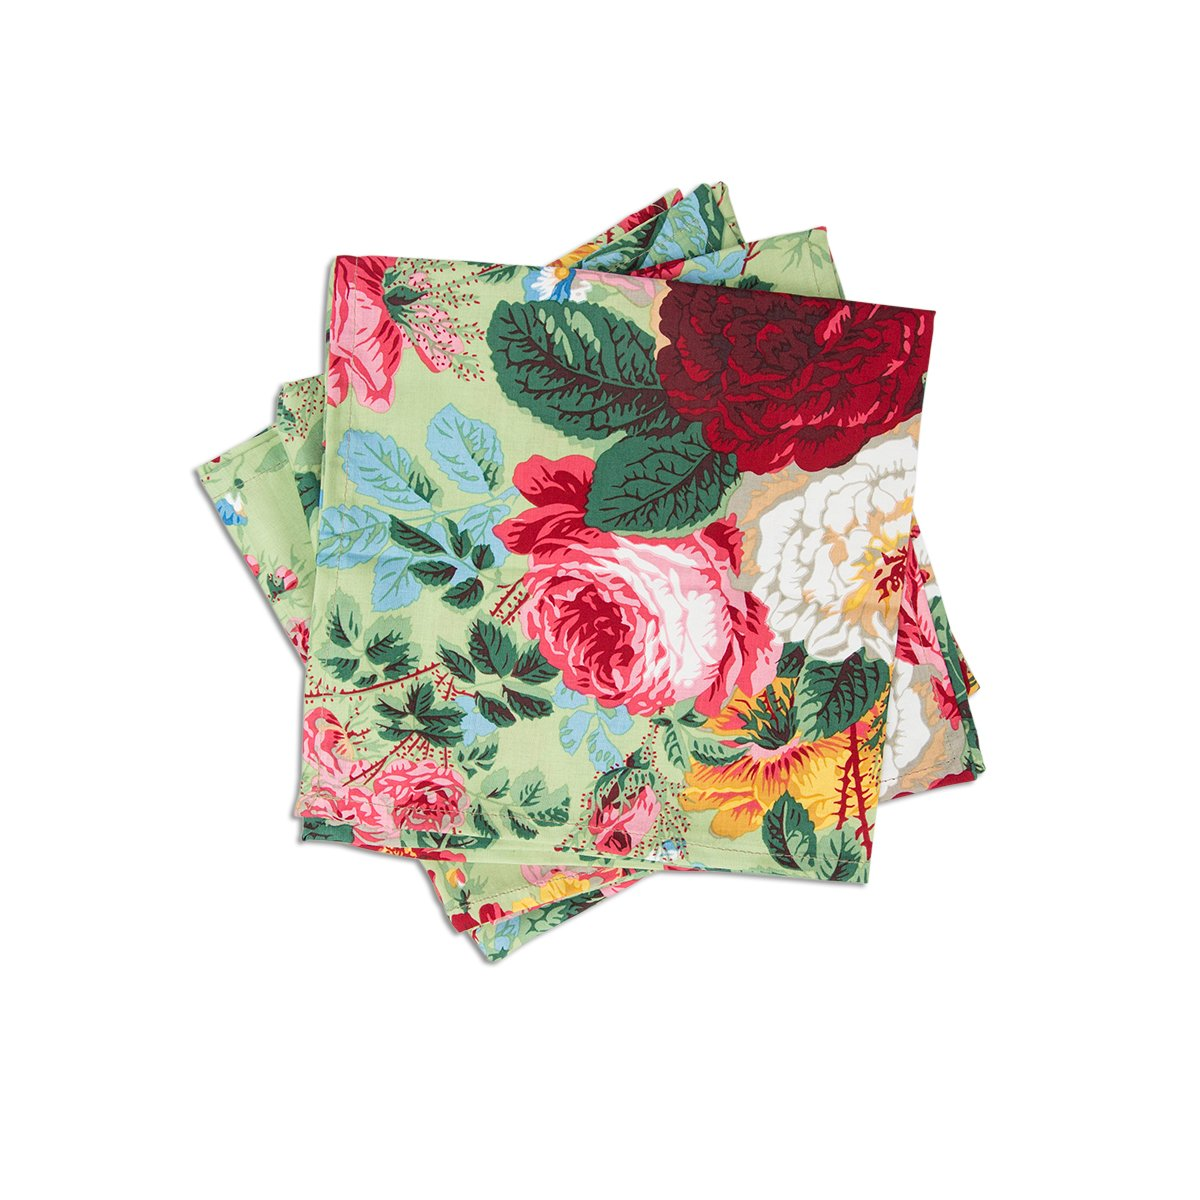 Winter Greenbrier Floral Napkins